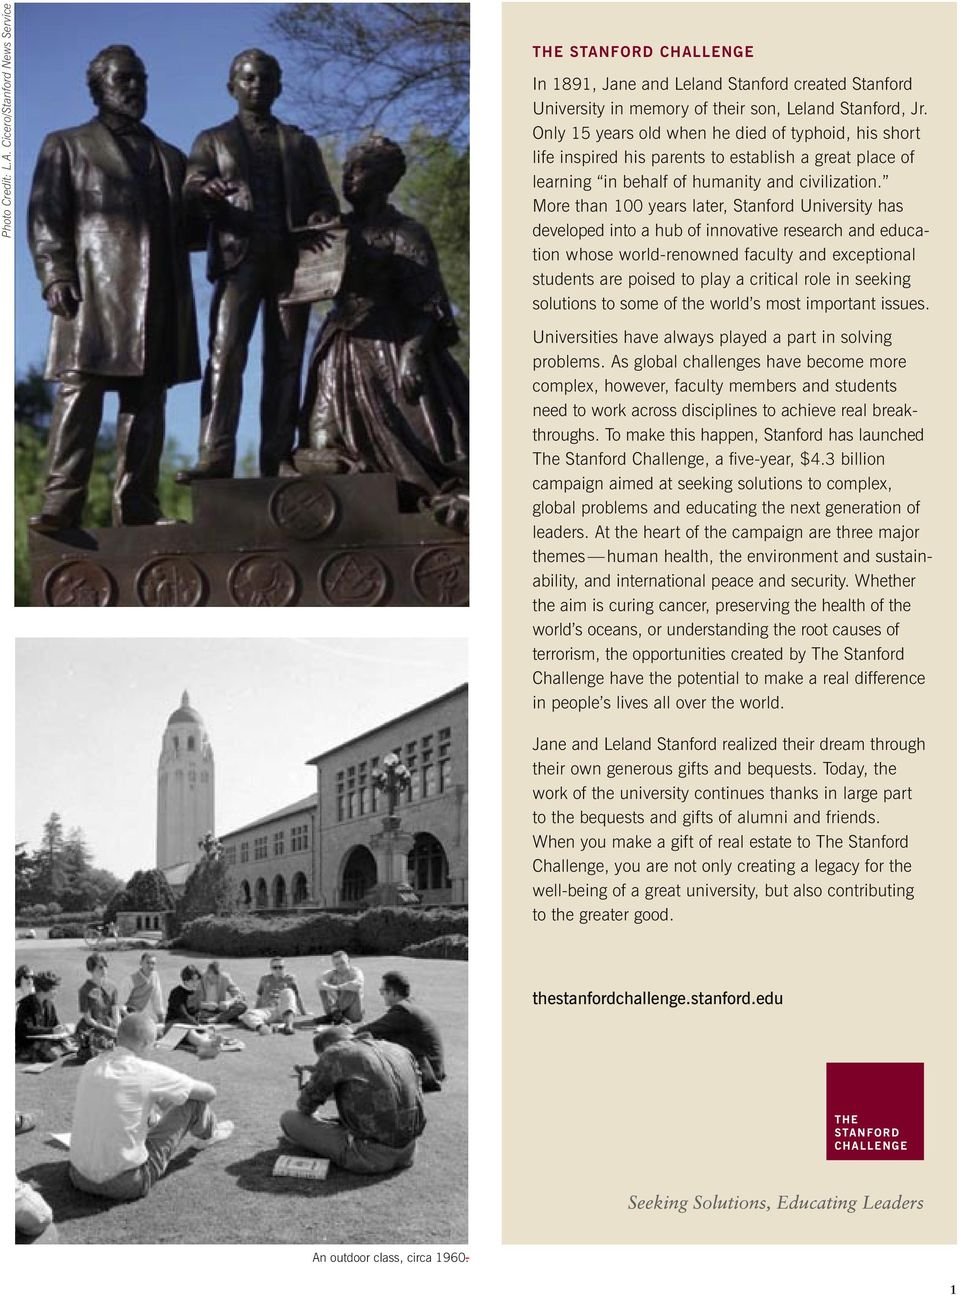 More than 100 years later, Stanford University has developed into a hub of innovative research and education whose world-renowned faculty and exceptional students are poised to play a critical role